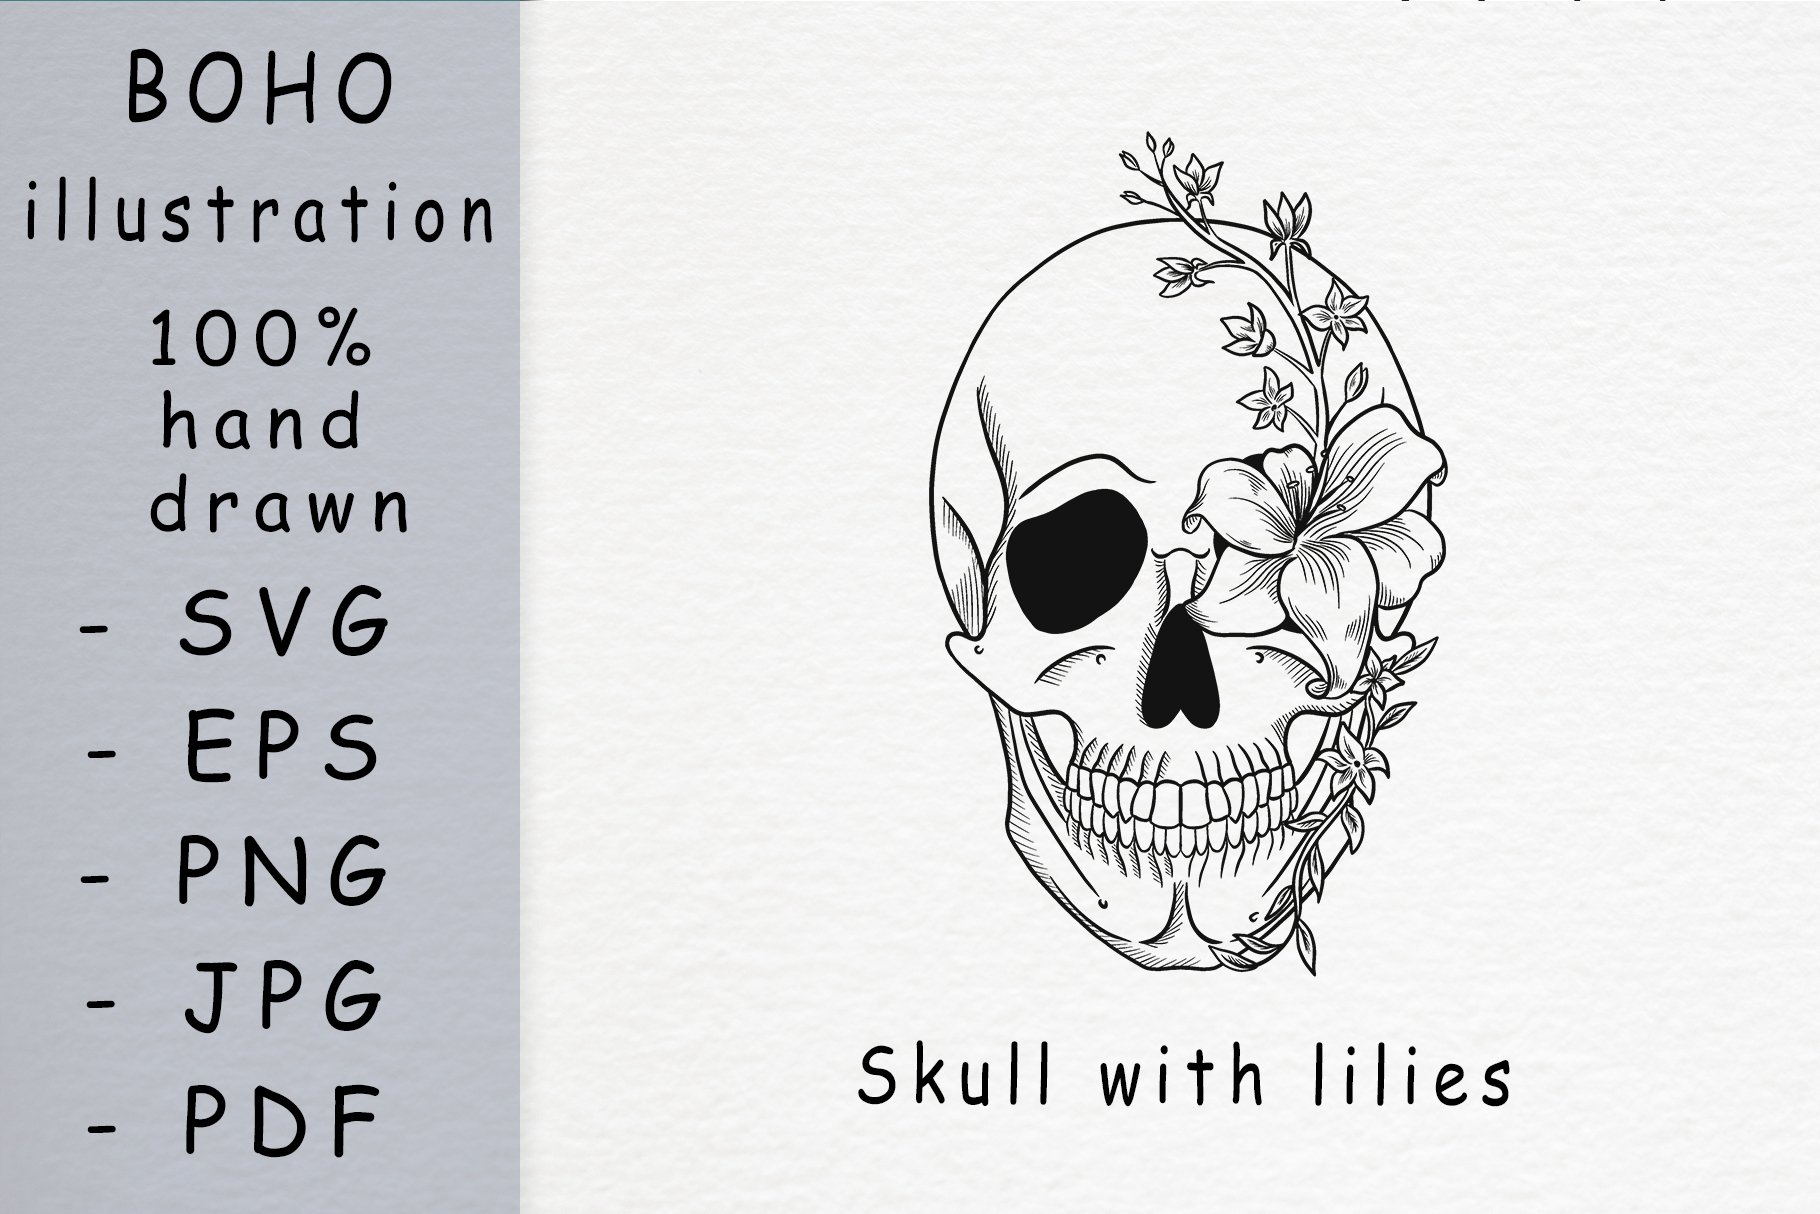 Boho illustration /skull with lilies example image 1